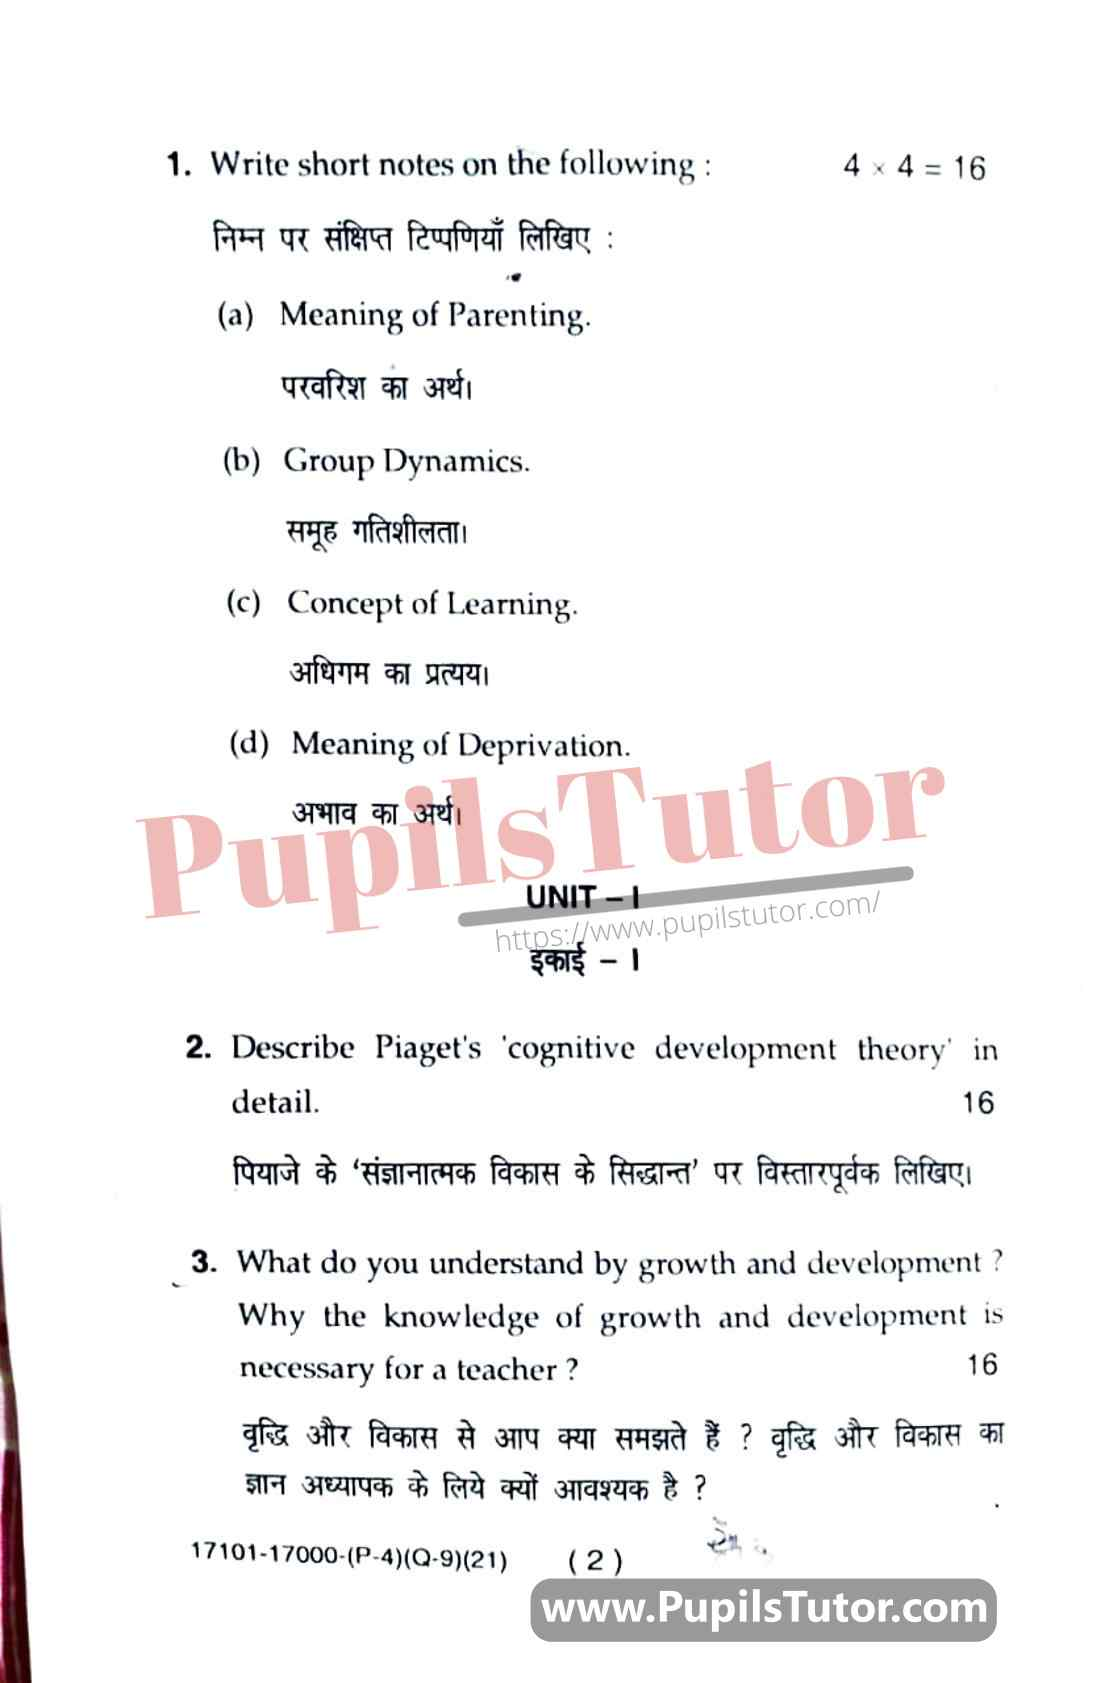 KUK (Kurukshetra University, Haryana) Childhood And Growing Up Question Paper 2021 For B.Ed 1st And 2nd Year And All The 4 Semesters In English And Hindi Medium Free Download PDF - Page 2 - www.pupilstutor.com